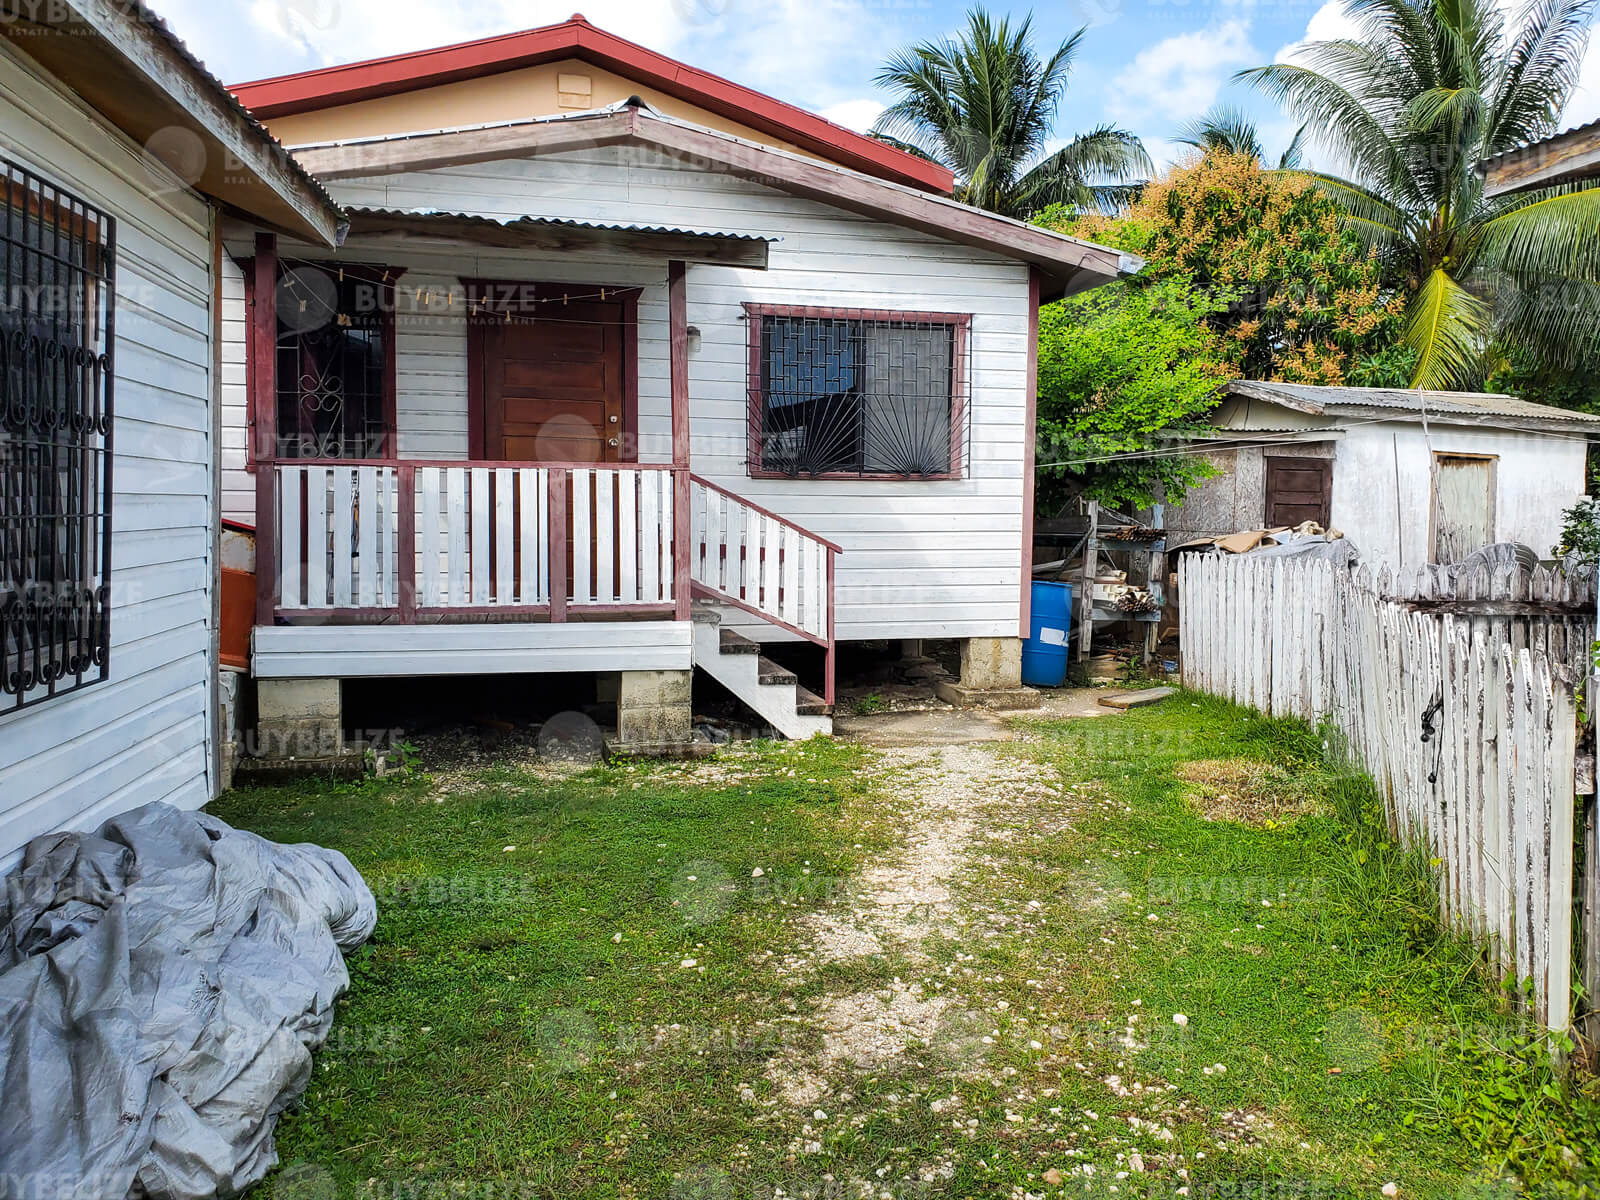 1 Bed 1 Bath Apartment for Rent in Belize City